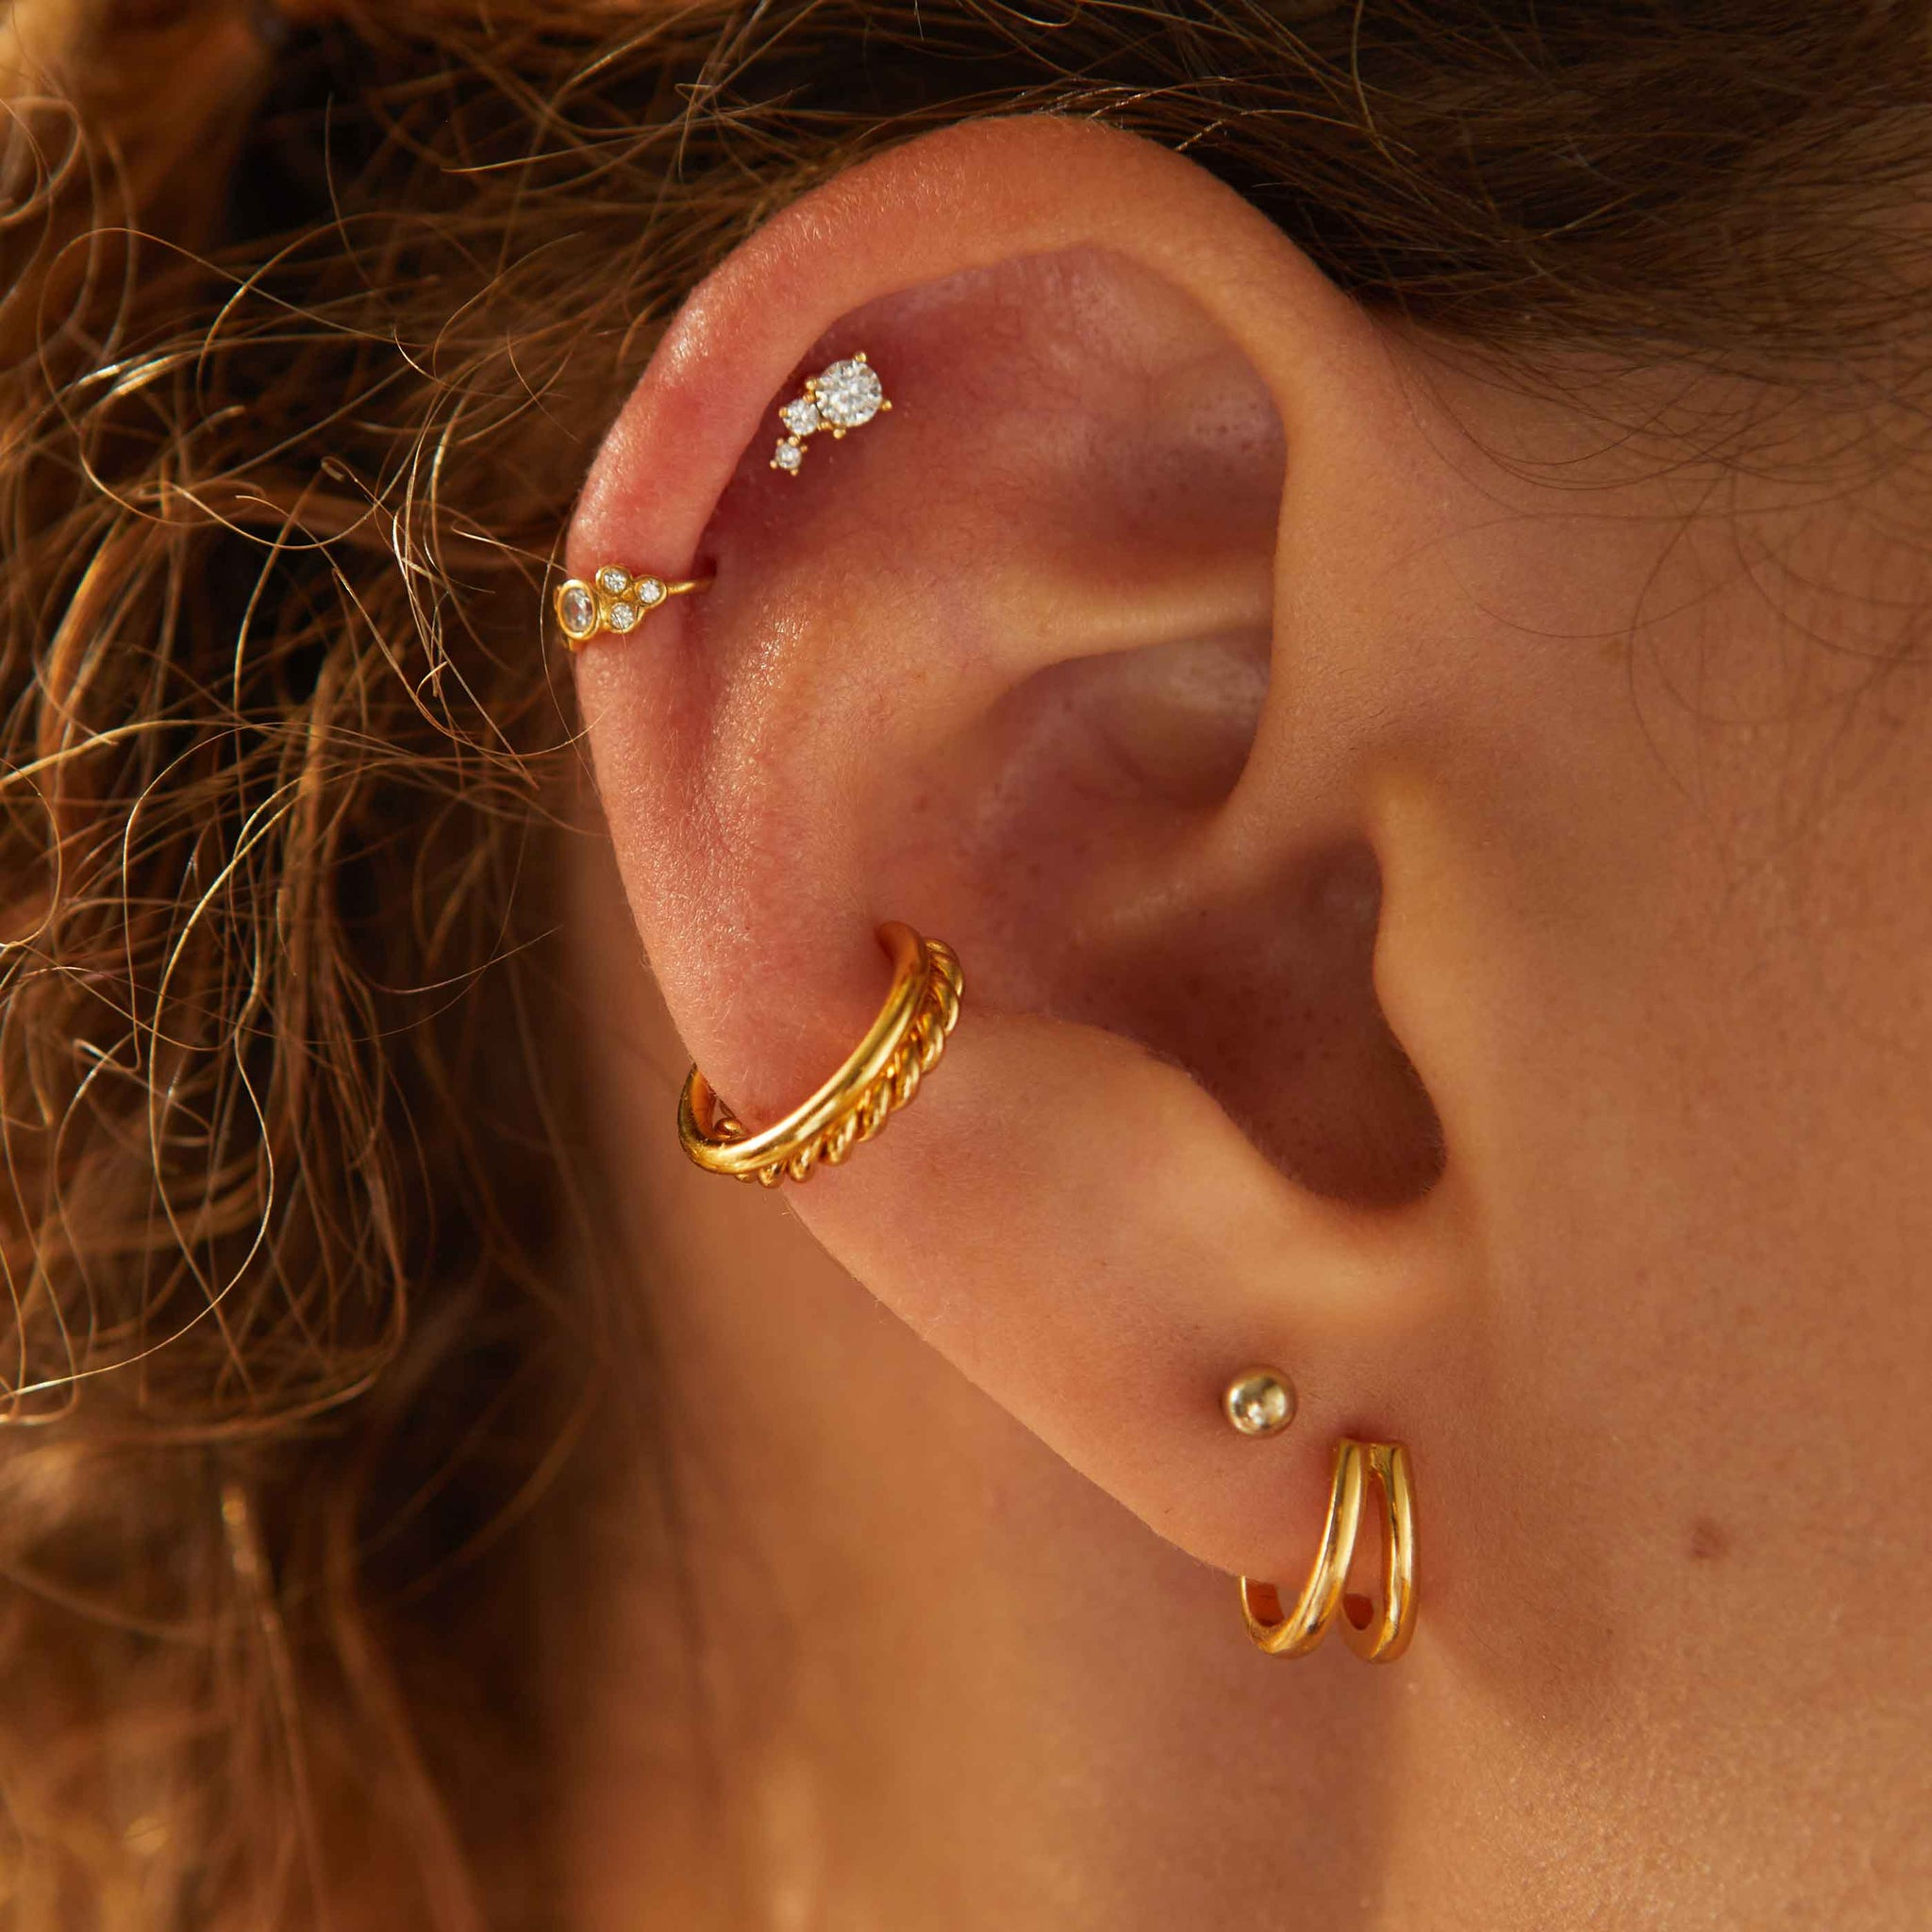 Double Bar Stud Earrings in Gold worn